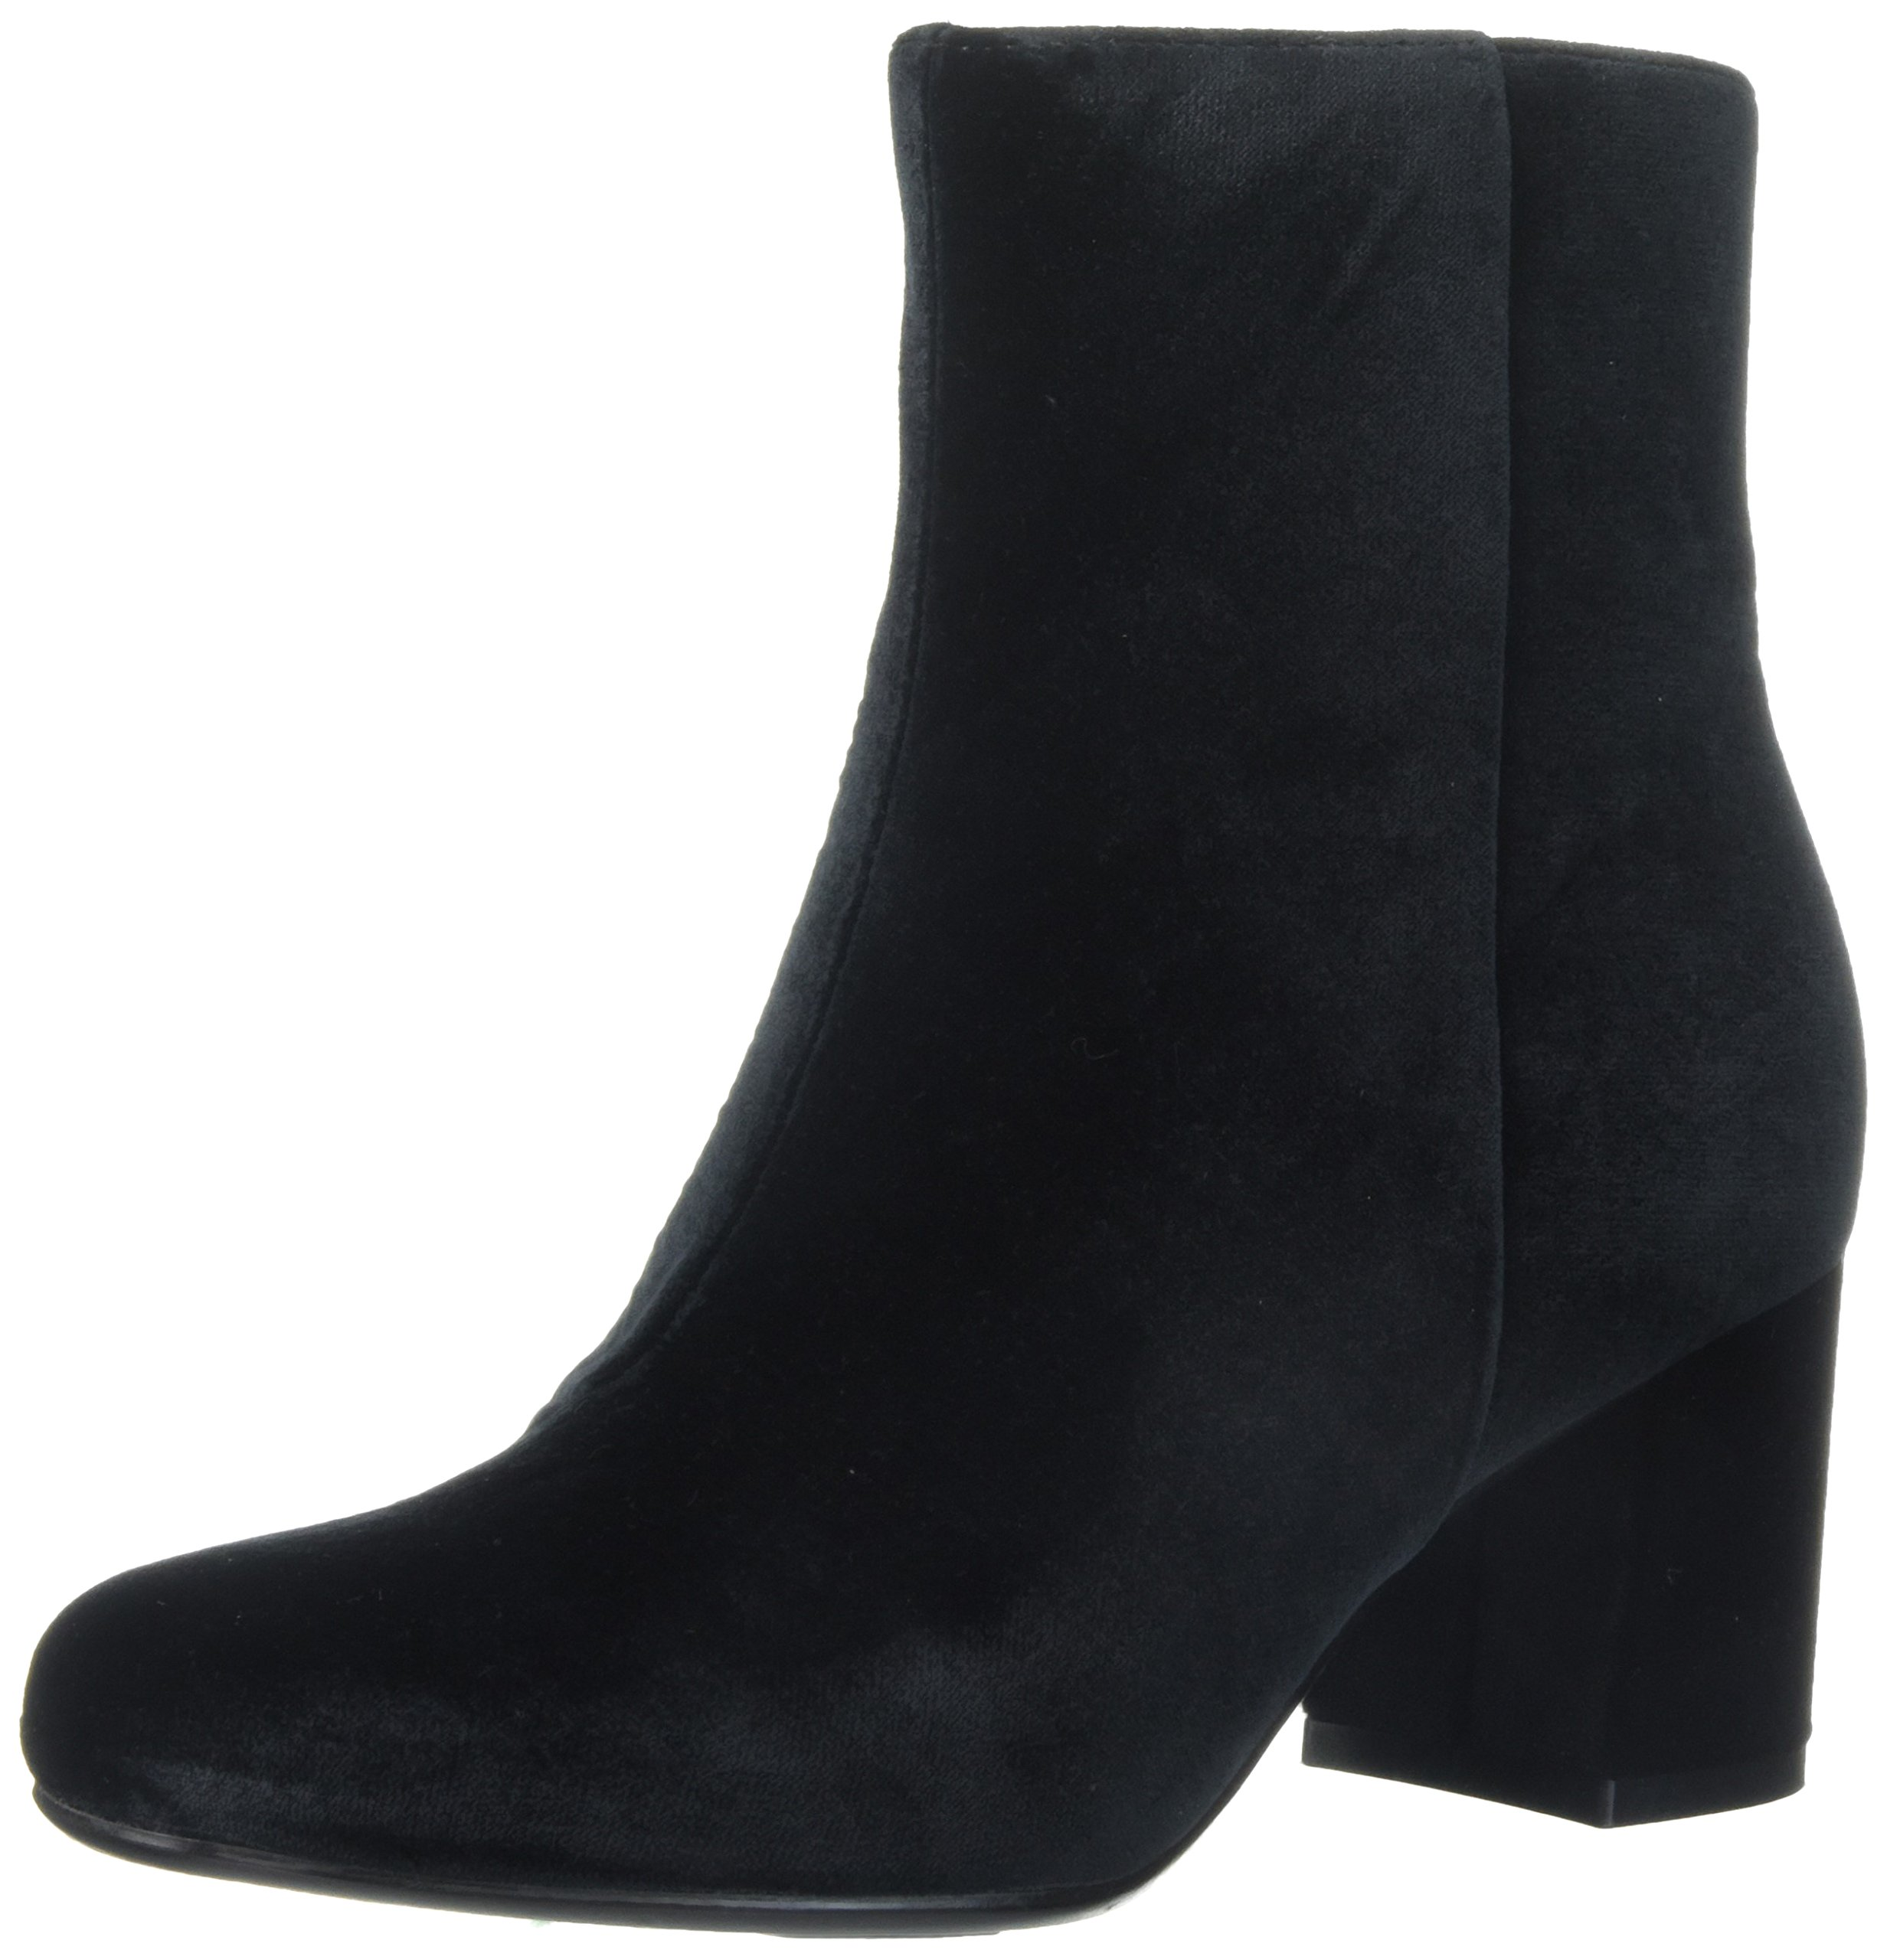 Naturalizer Women's Westing Boot, Black, 6.5 M US by Naturalizer (Image #1)